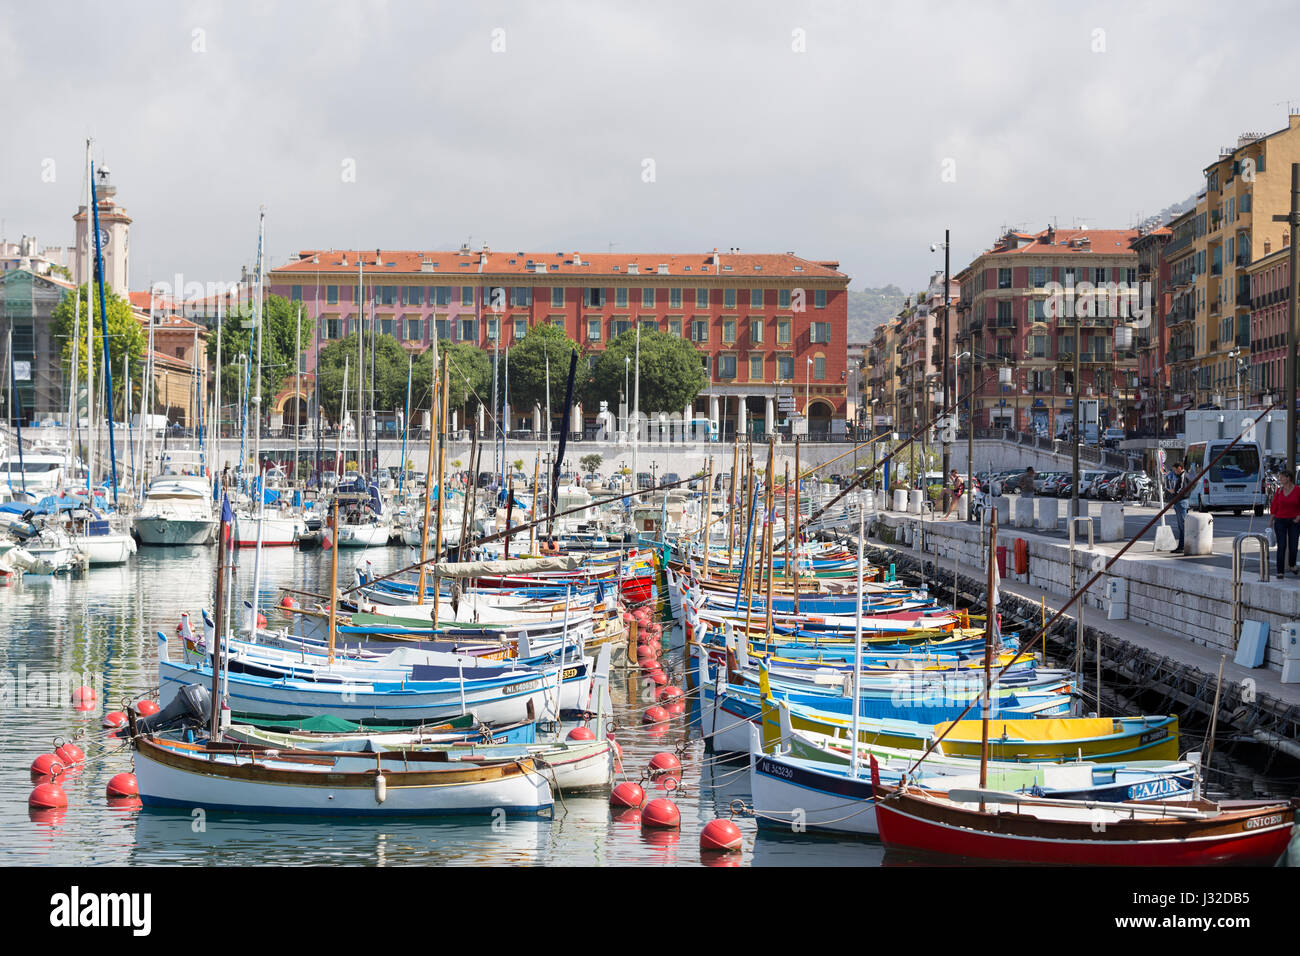 France, Nice, colourful old wooden fishing boats in the harbour. Stock Photo